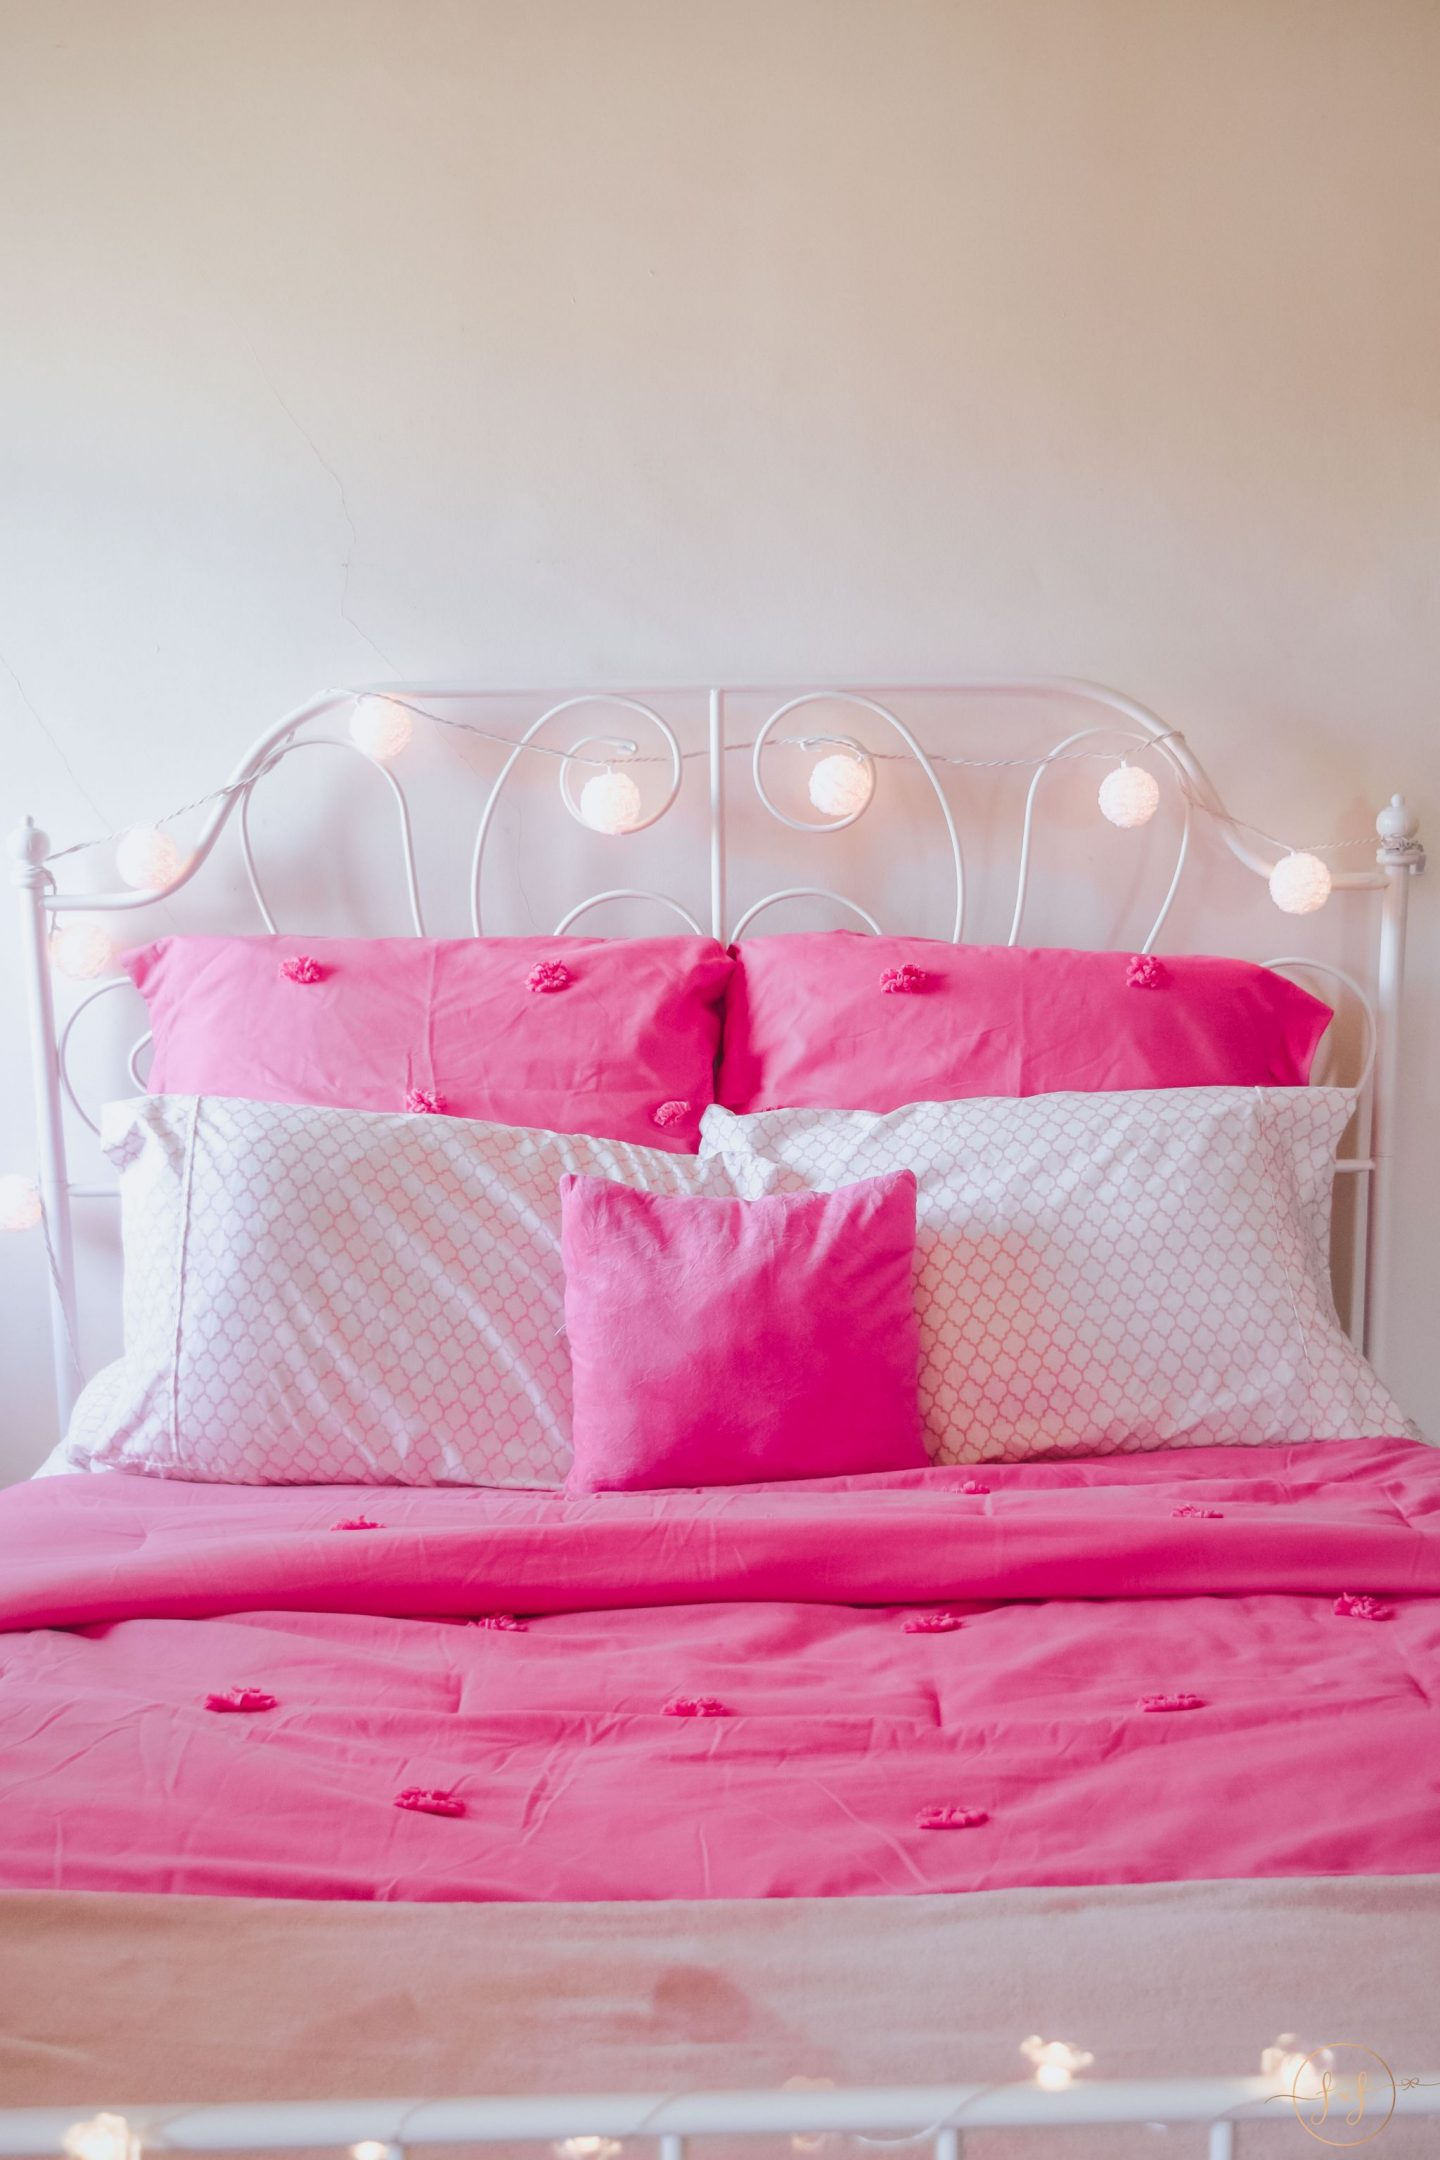 The Dream Pinterest Bed I've Always Wanted